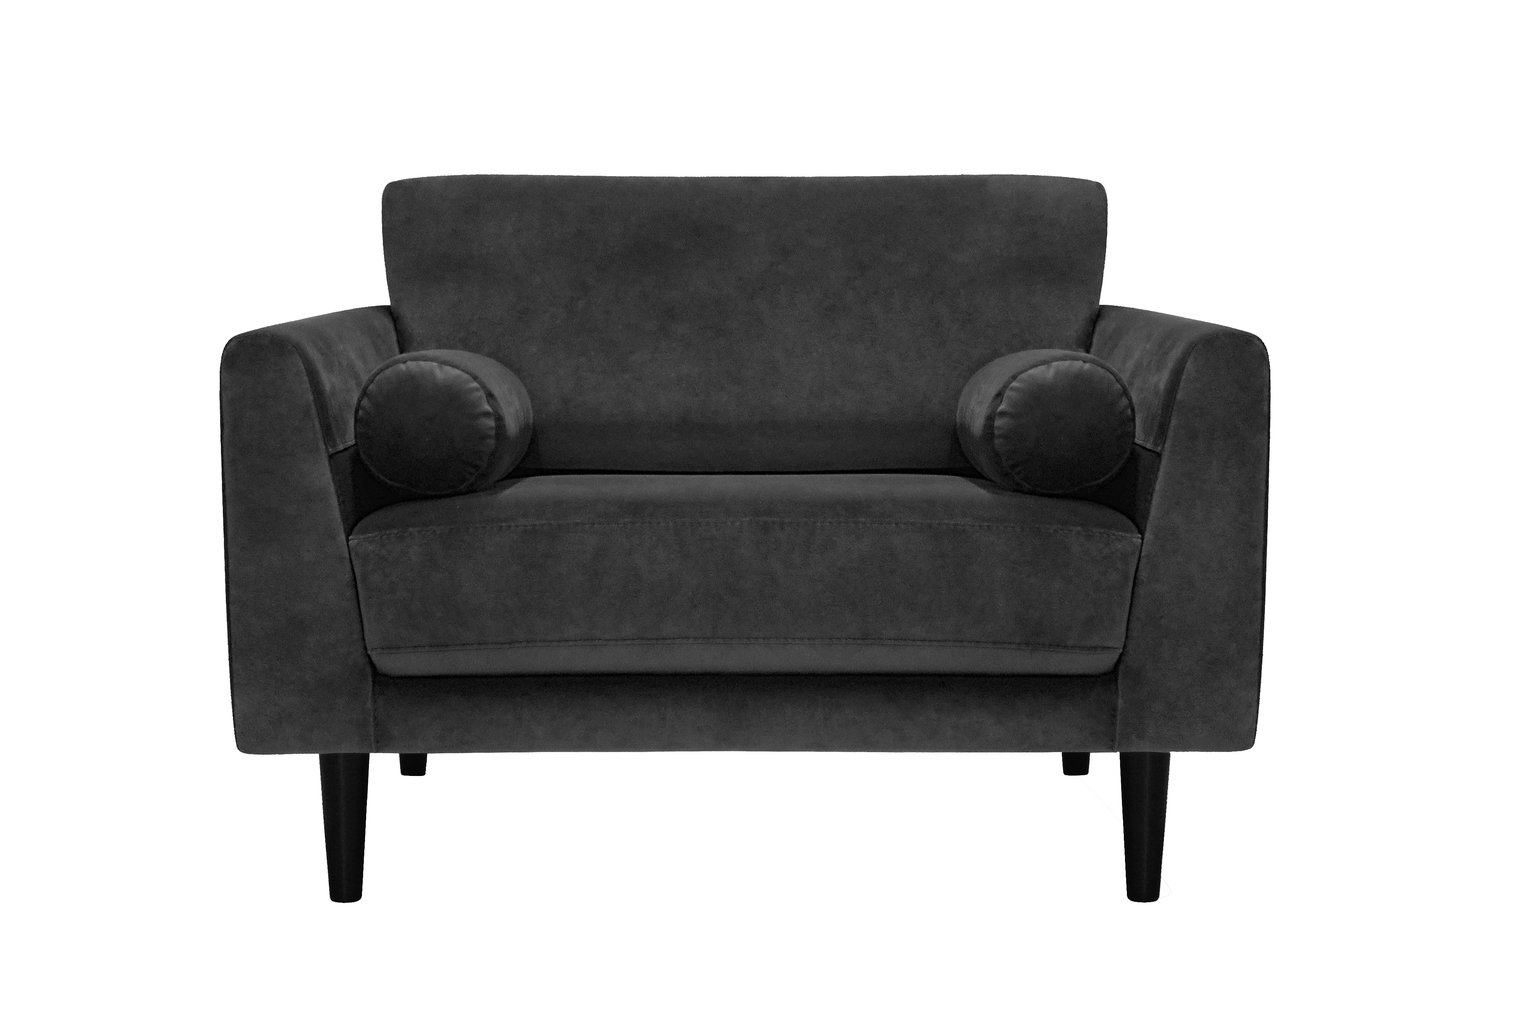 Argos Home Jackson Velvet Cuddle Chair - Charcoal